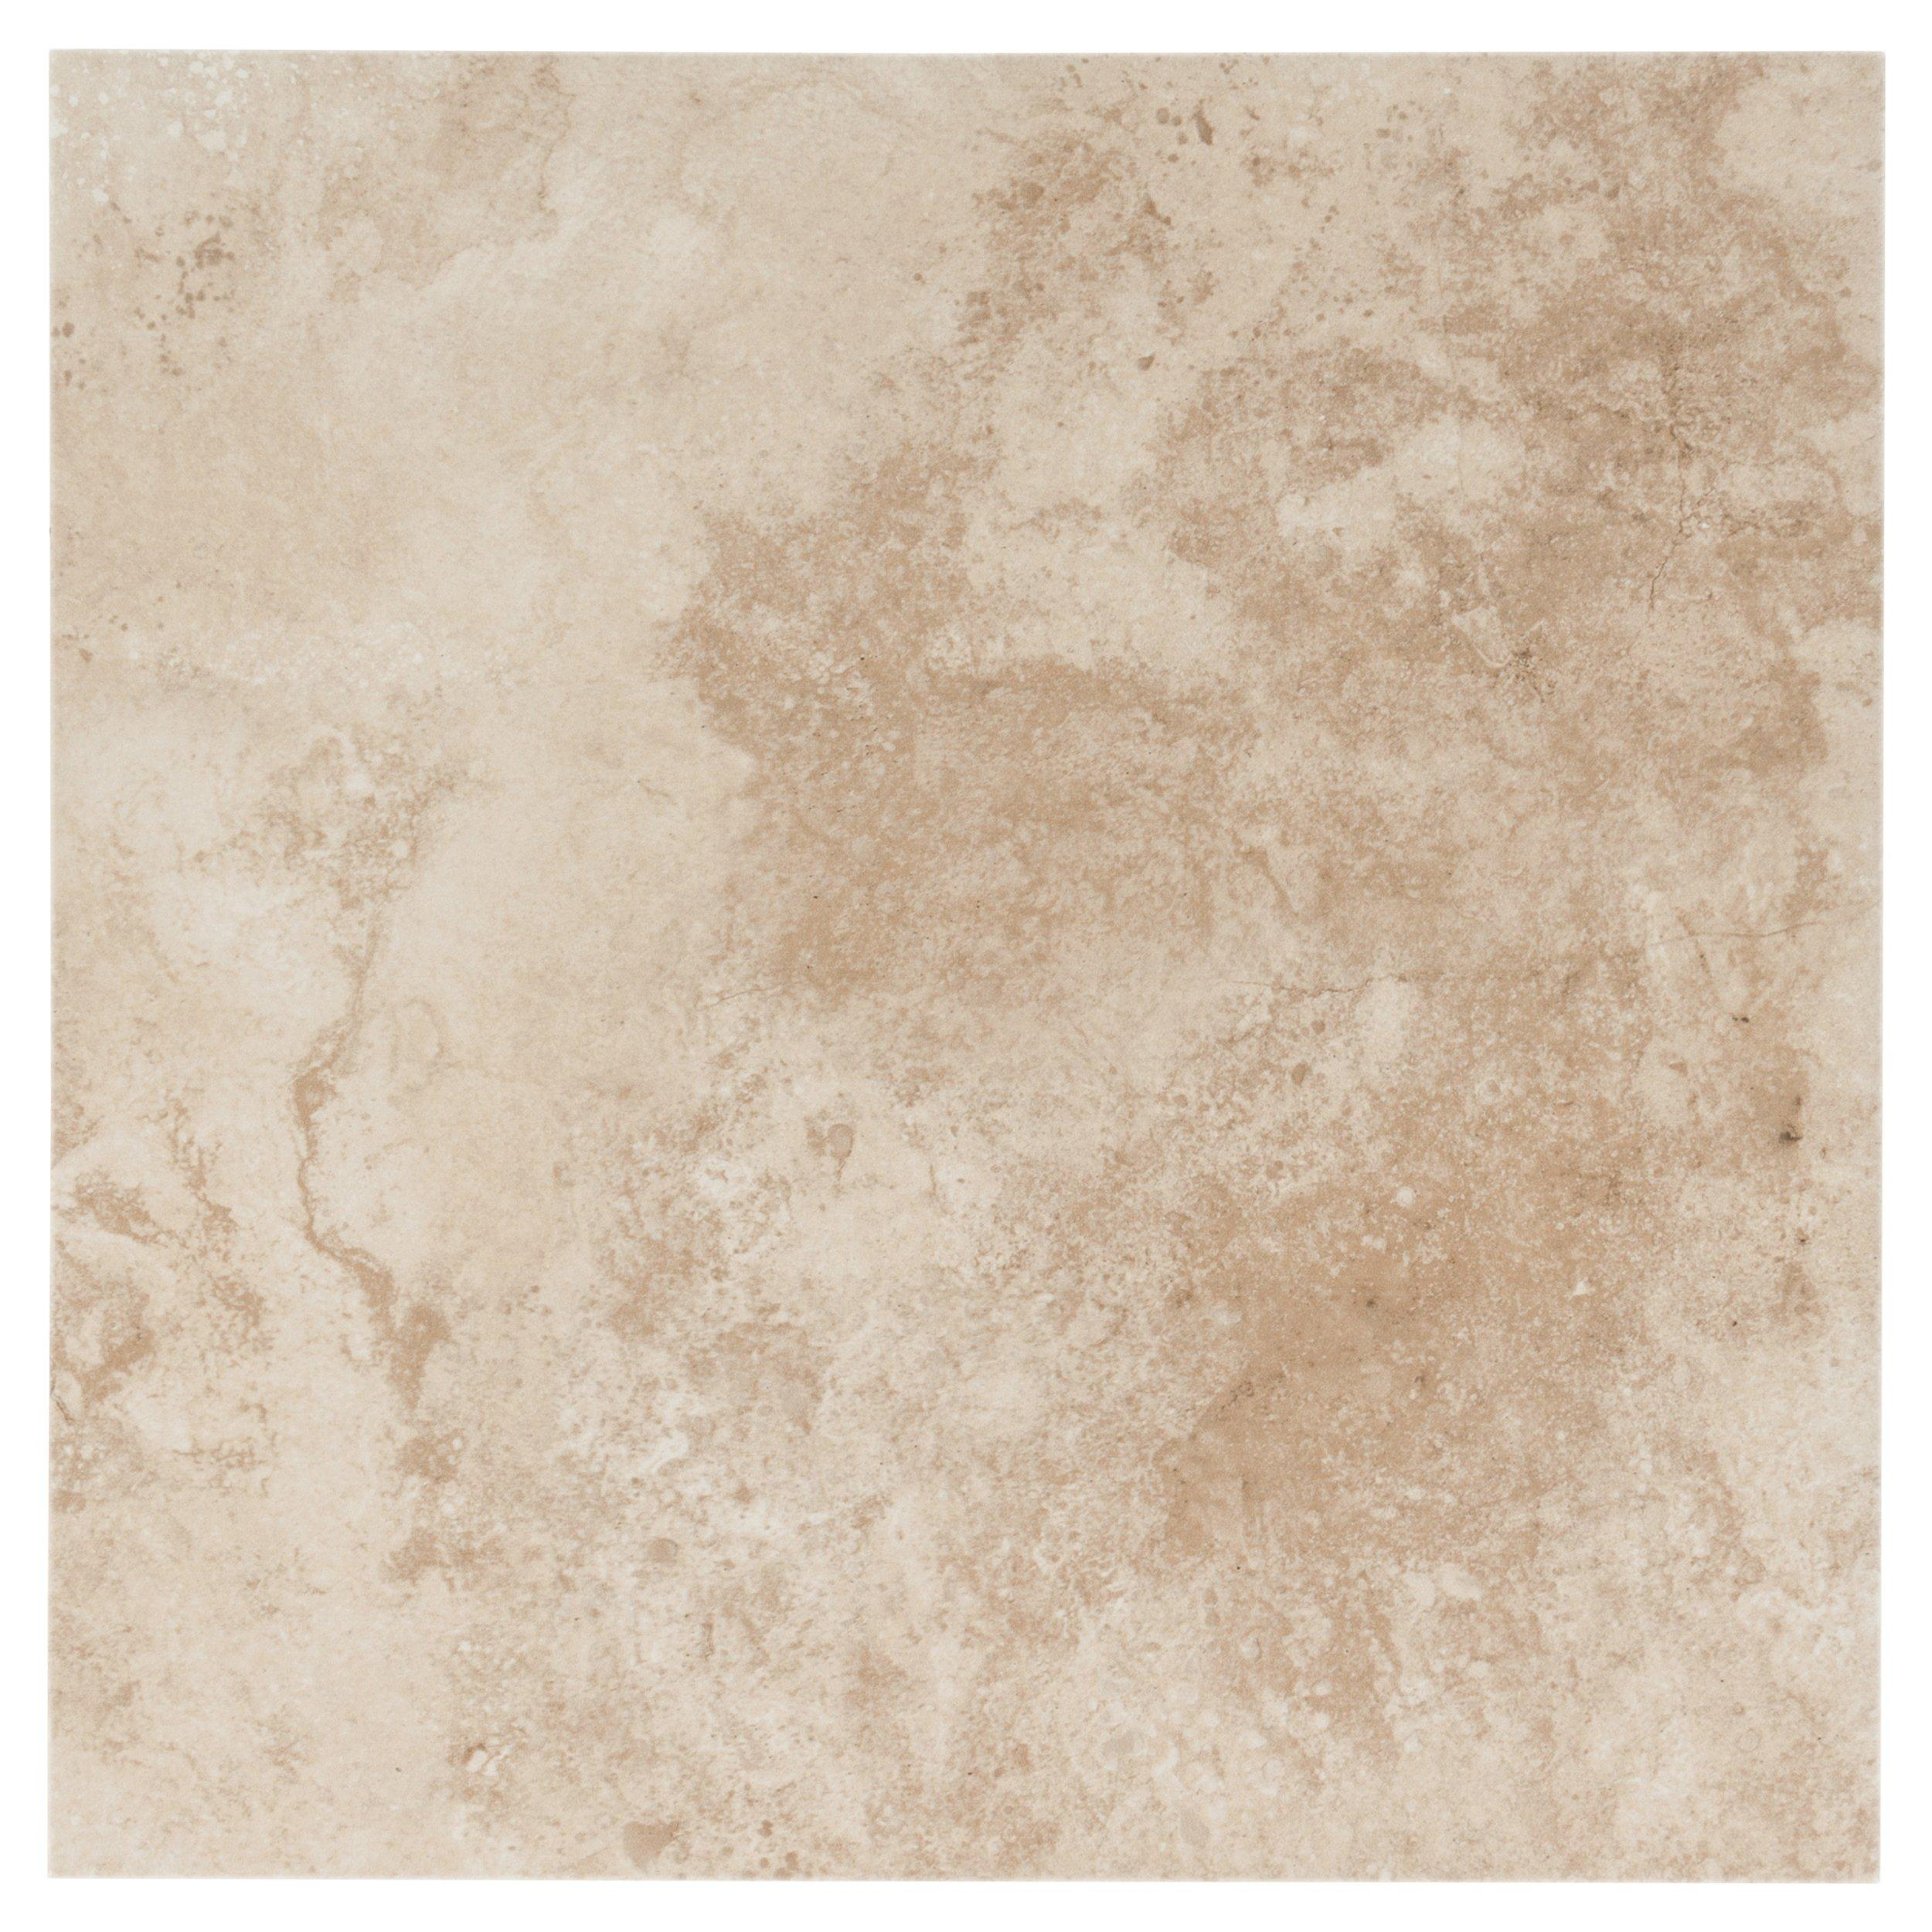 petros ocre porcelain tile 16in x 16in floor and decor